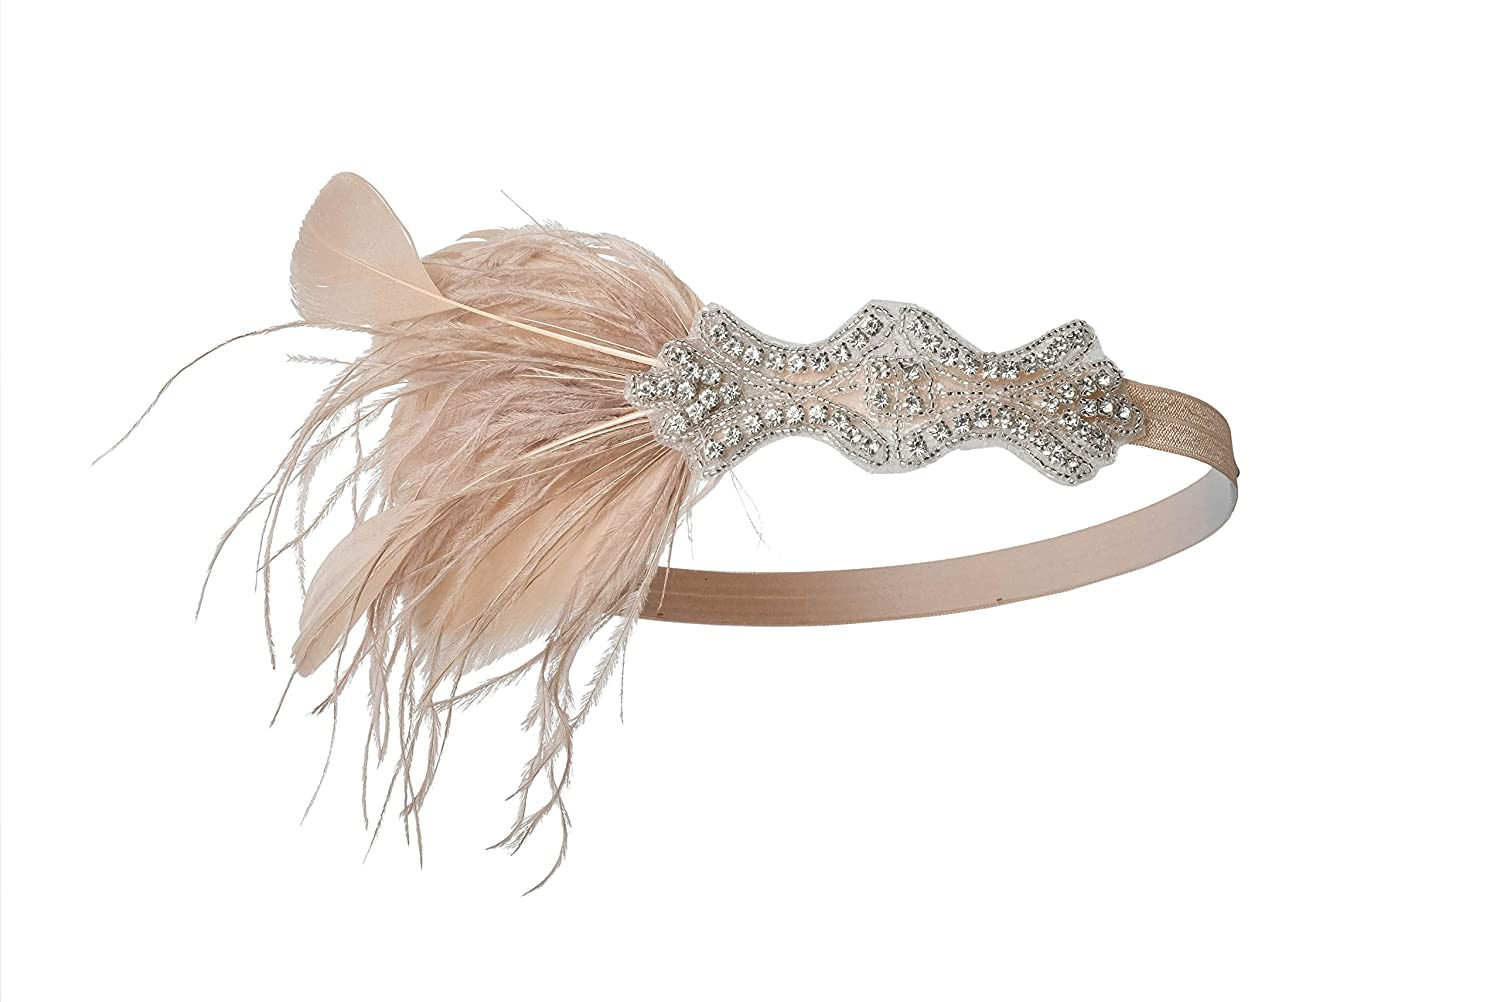 1920s Headband, Headpiece & Hair Accessory Styles 1920s Headpiece Roaring 20s Great Gatsby Headband Flapper Accessories for Women $10.99 AT vintagedancer.com